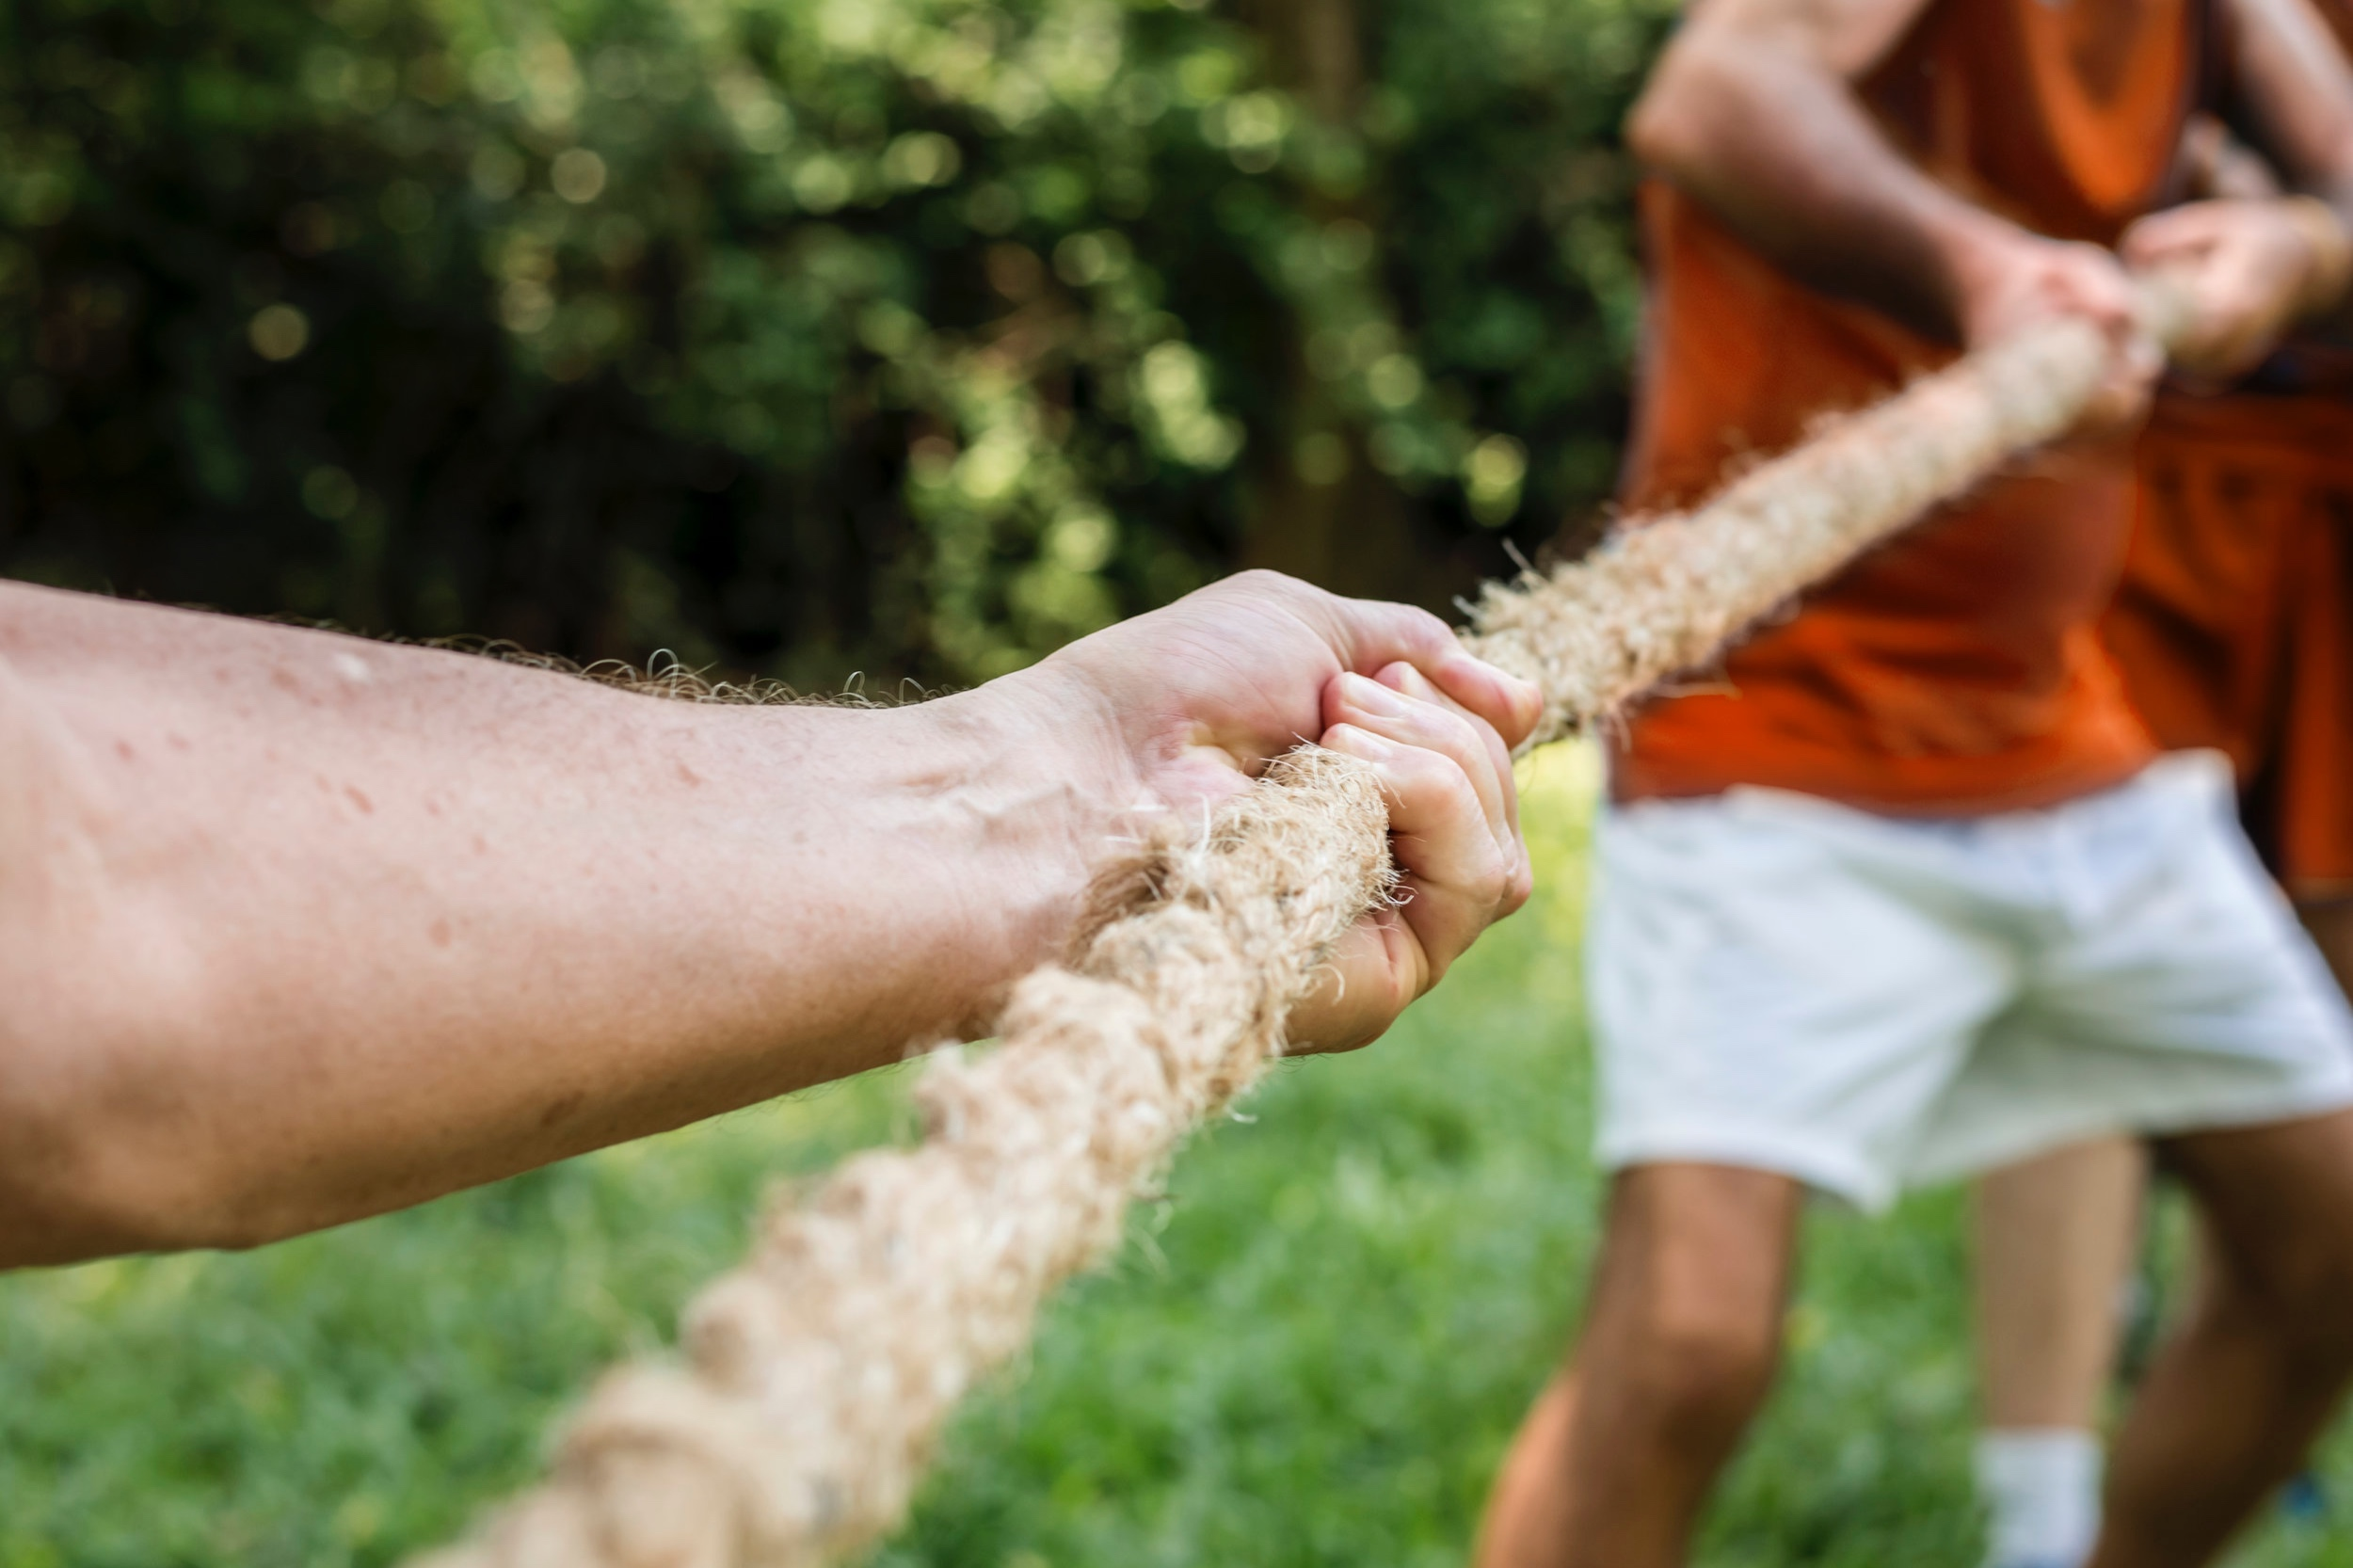 hands holding a tug-of-war rope